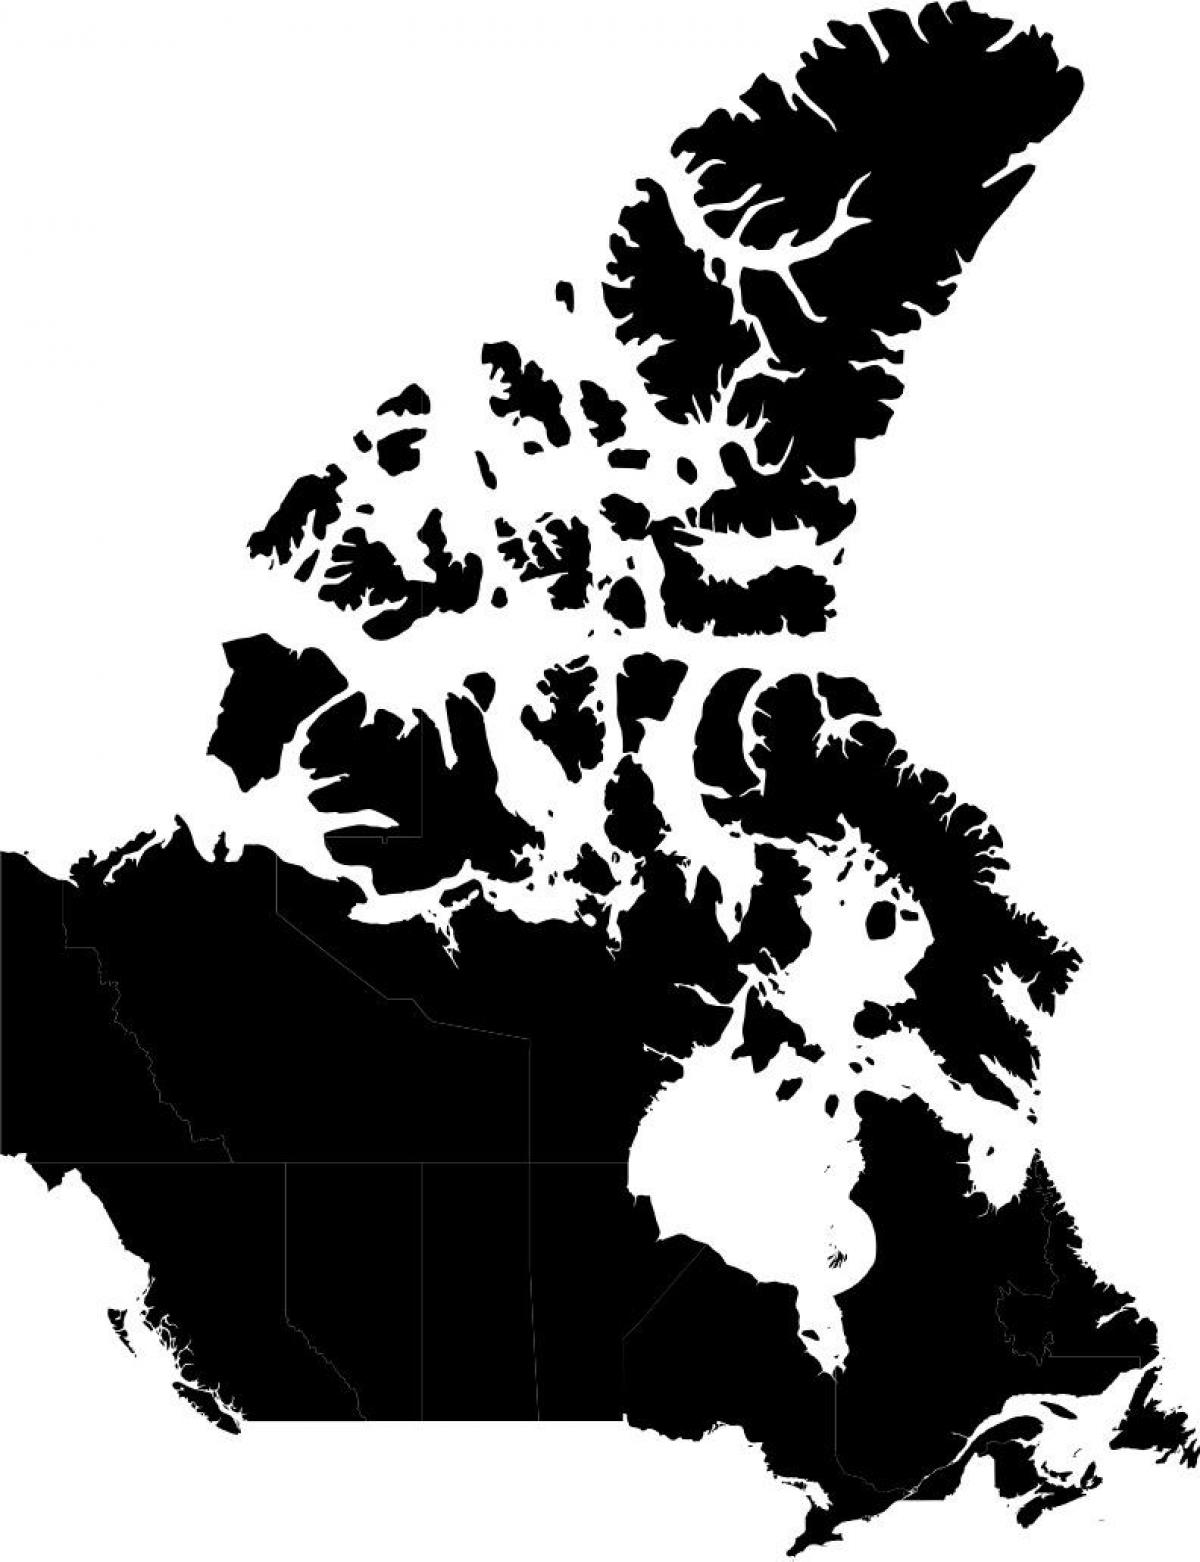 Map Of Canada Silhouette.Canada Map Silhouette Map Of Canada Silhouette Northern America